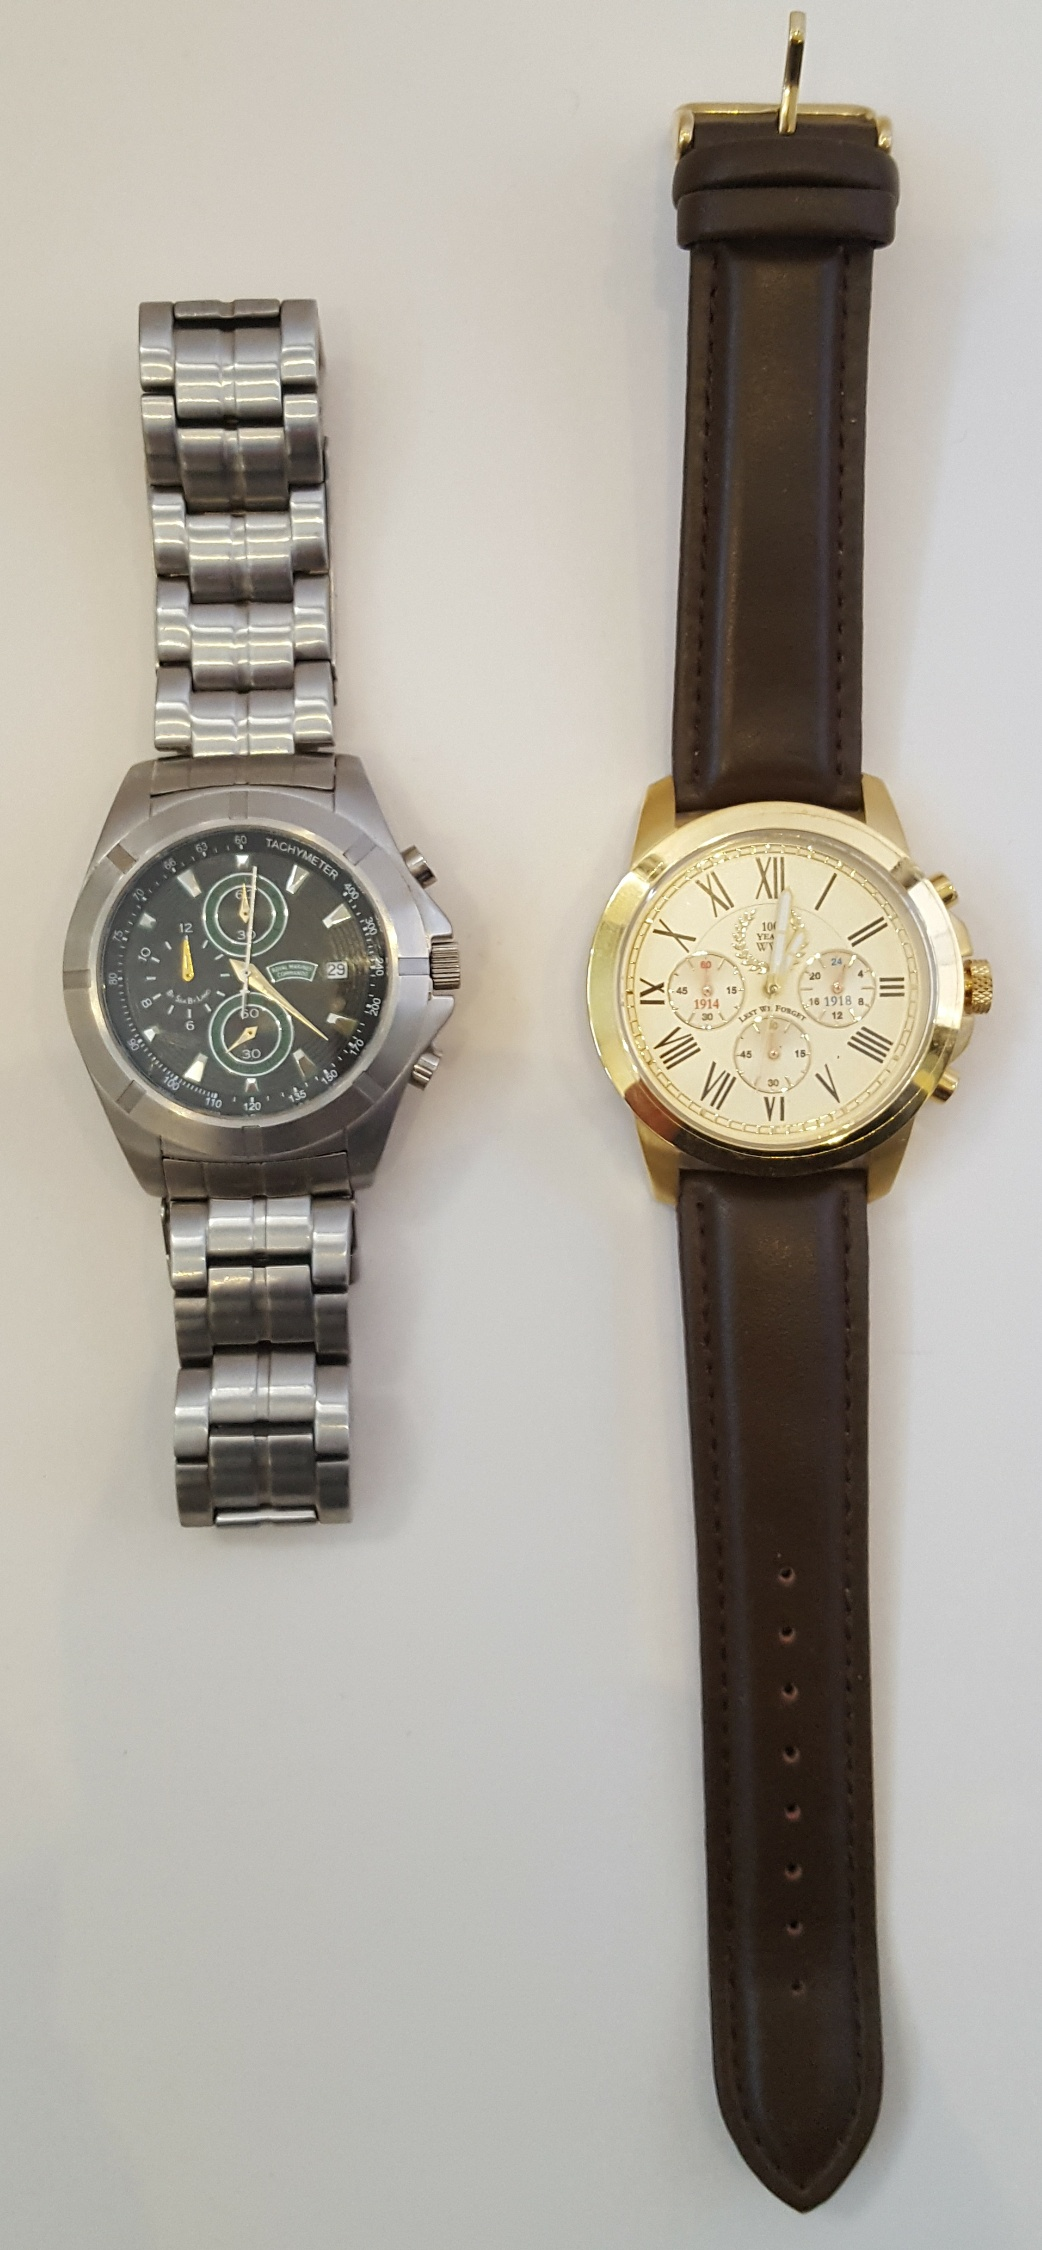 Lot 20 - Vintage Wrist Watches 1 x Royal Marine Commando & 1 x Lest We Forget WWI Rememberance Watch